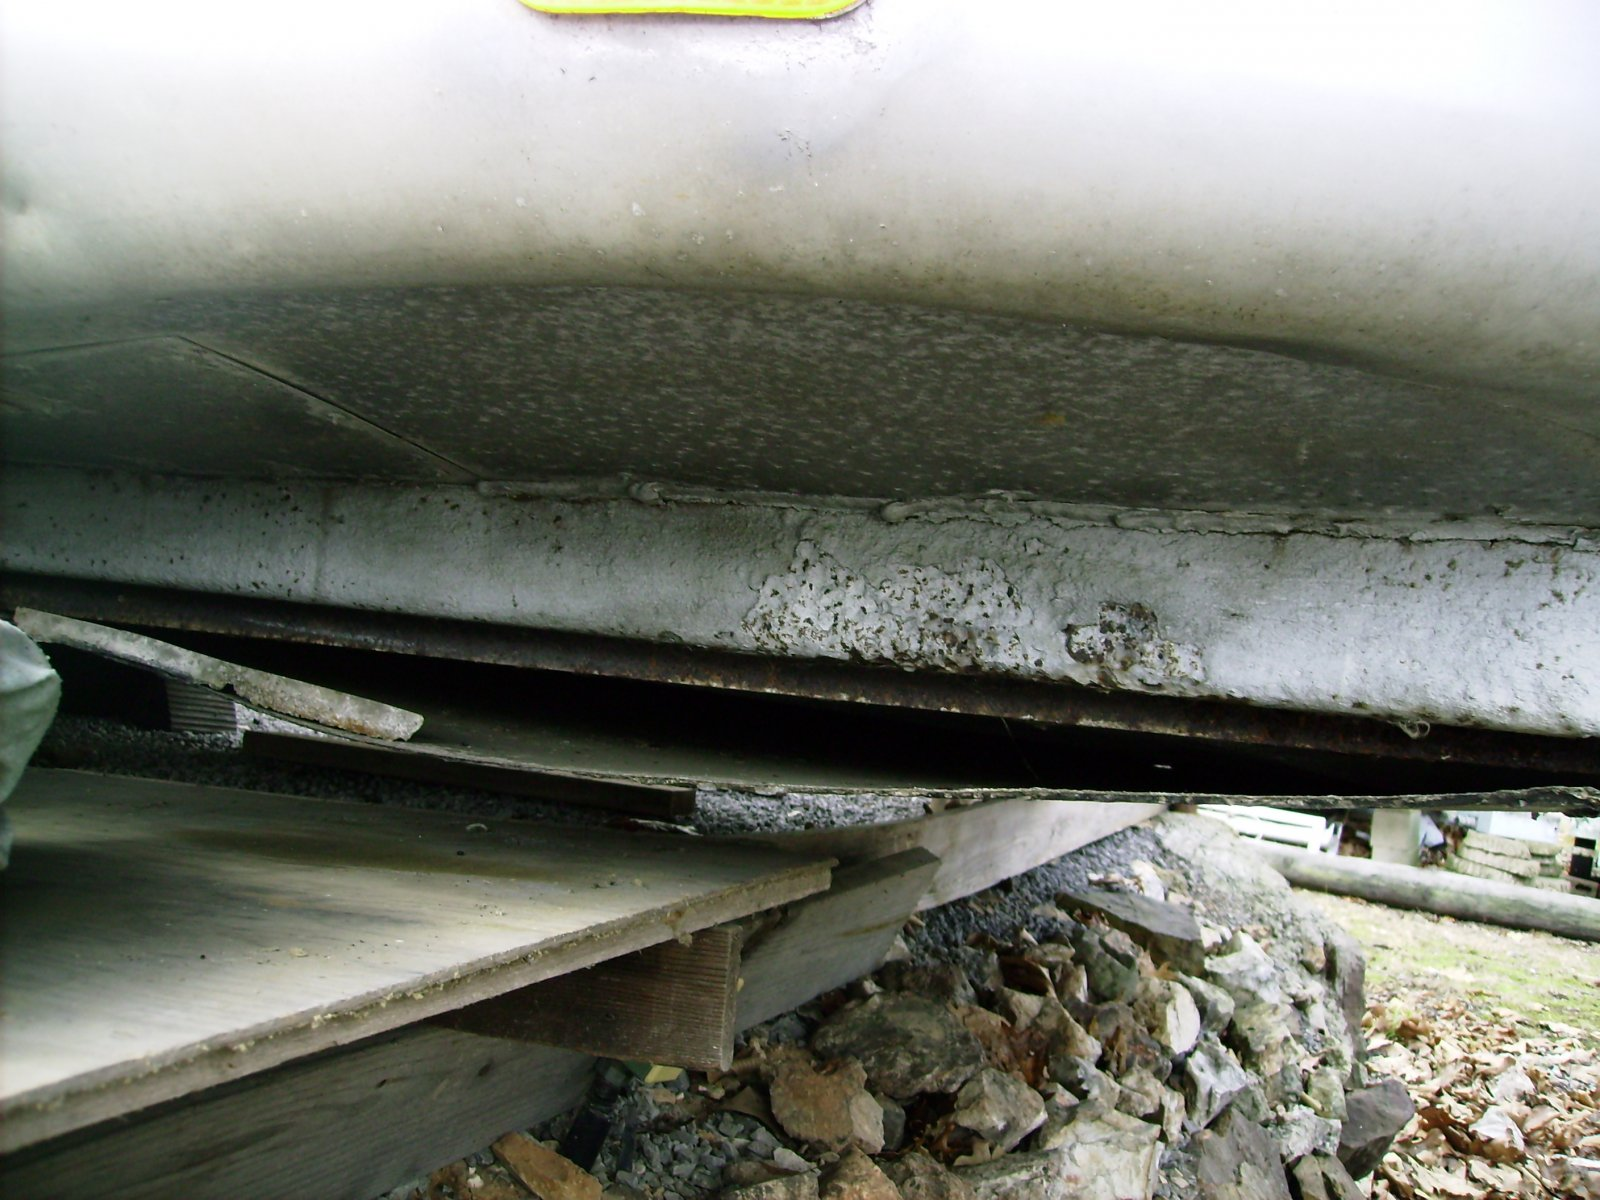 Click image for larger version  Name:Lft rear end tail drop rust delamination.jpg Views:58 Size:281.9 KB ID:72669